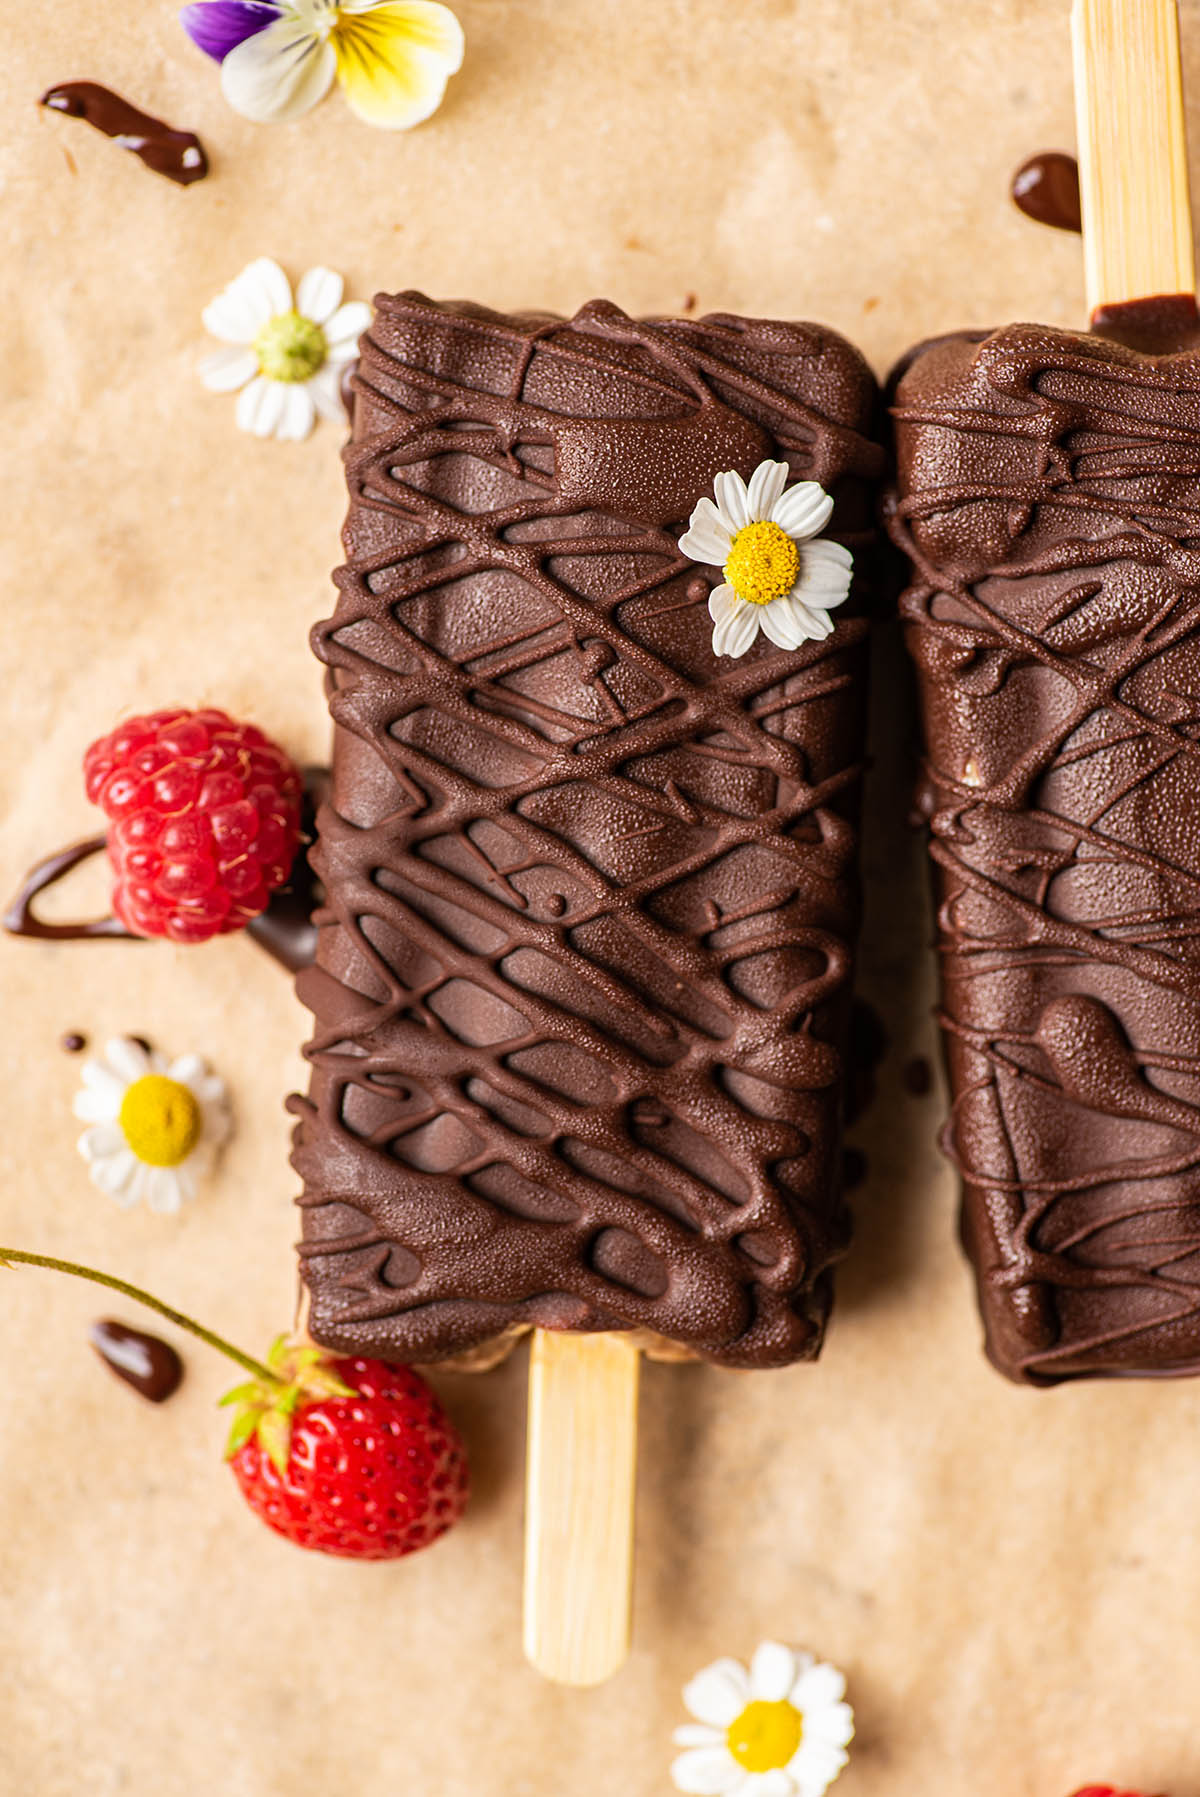 Dark chocolate coated popsicles on parchment paper with flowers and berries.